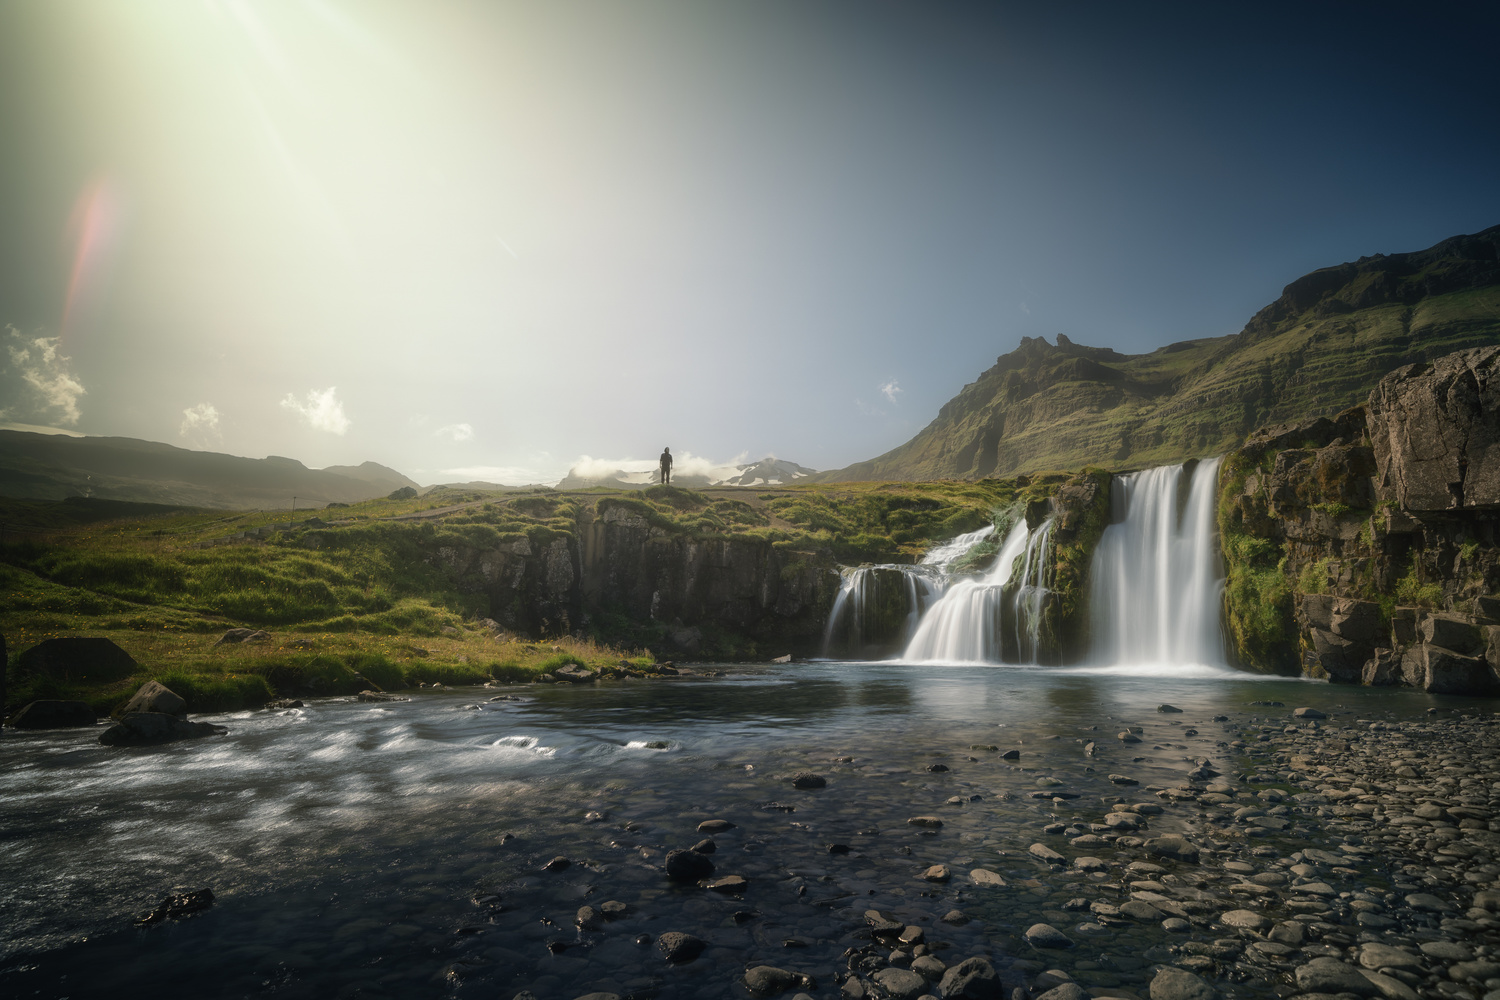 Image on the back of the famous kirkjufell, Iceland by DaniGviews /Daniel